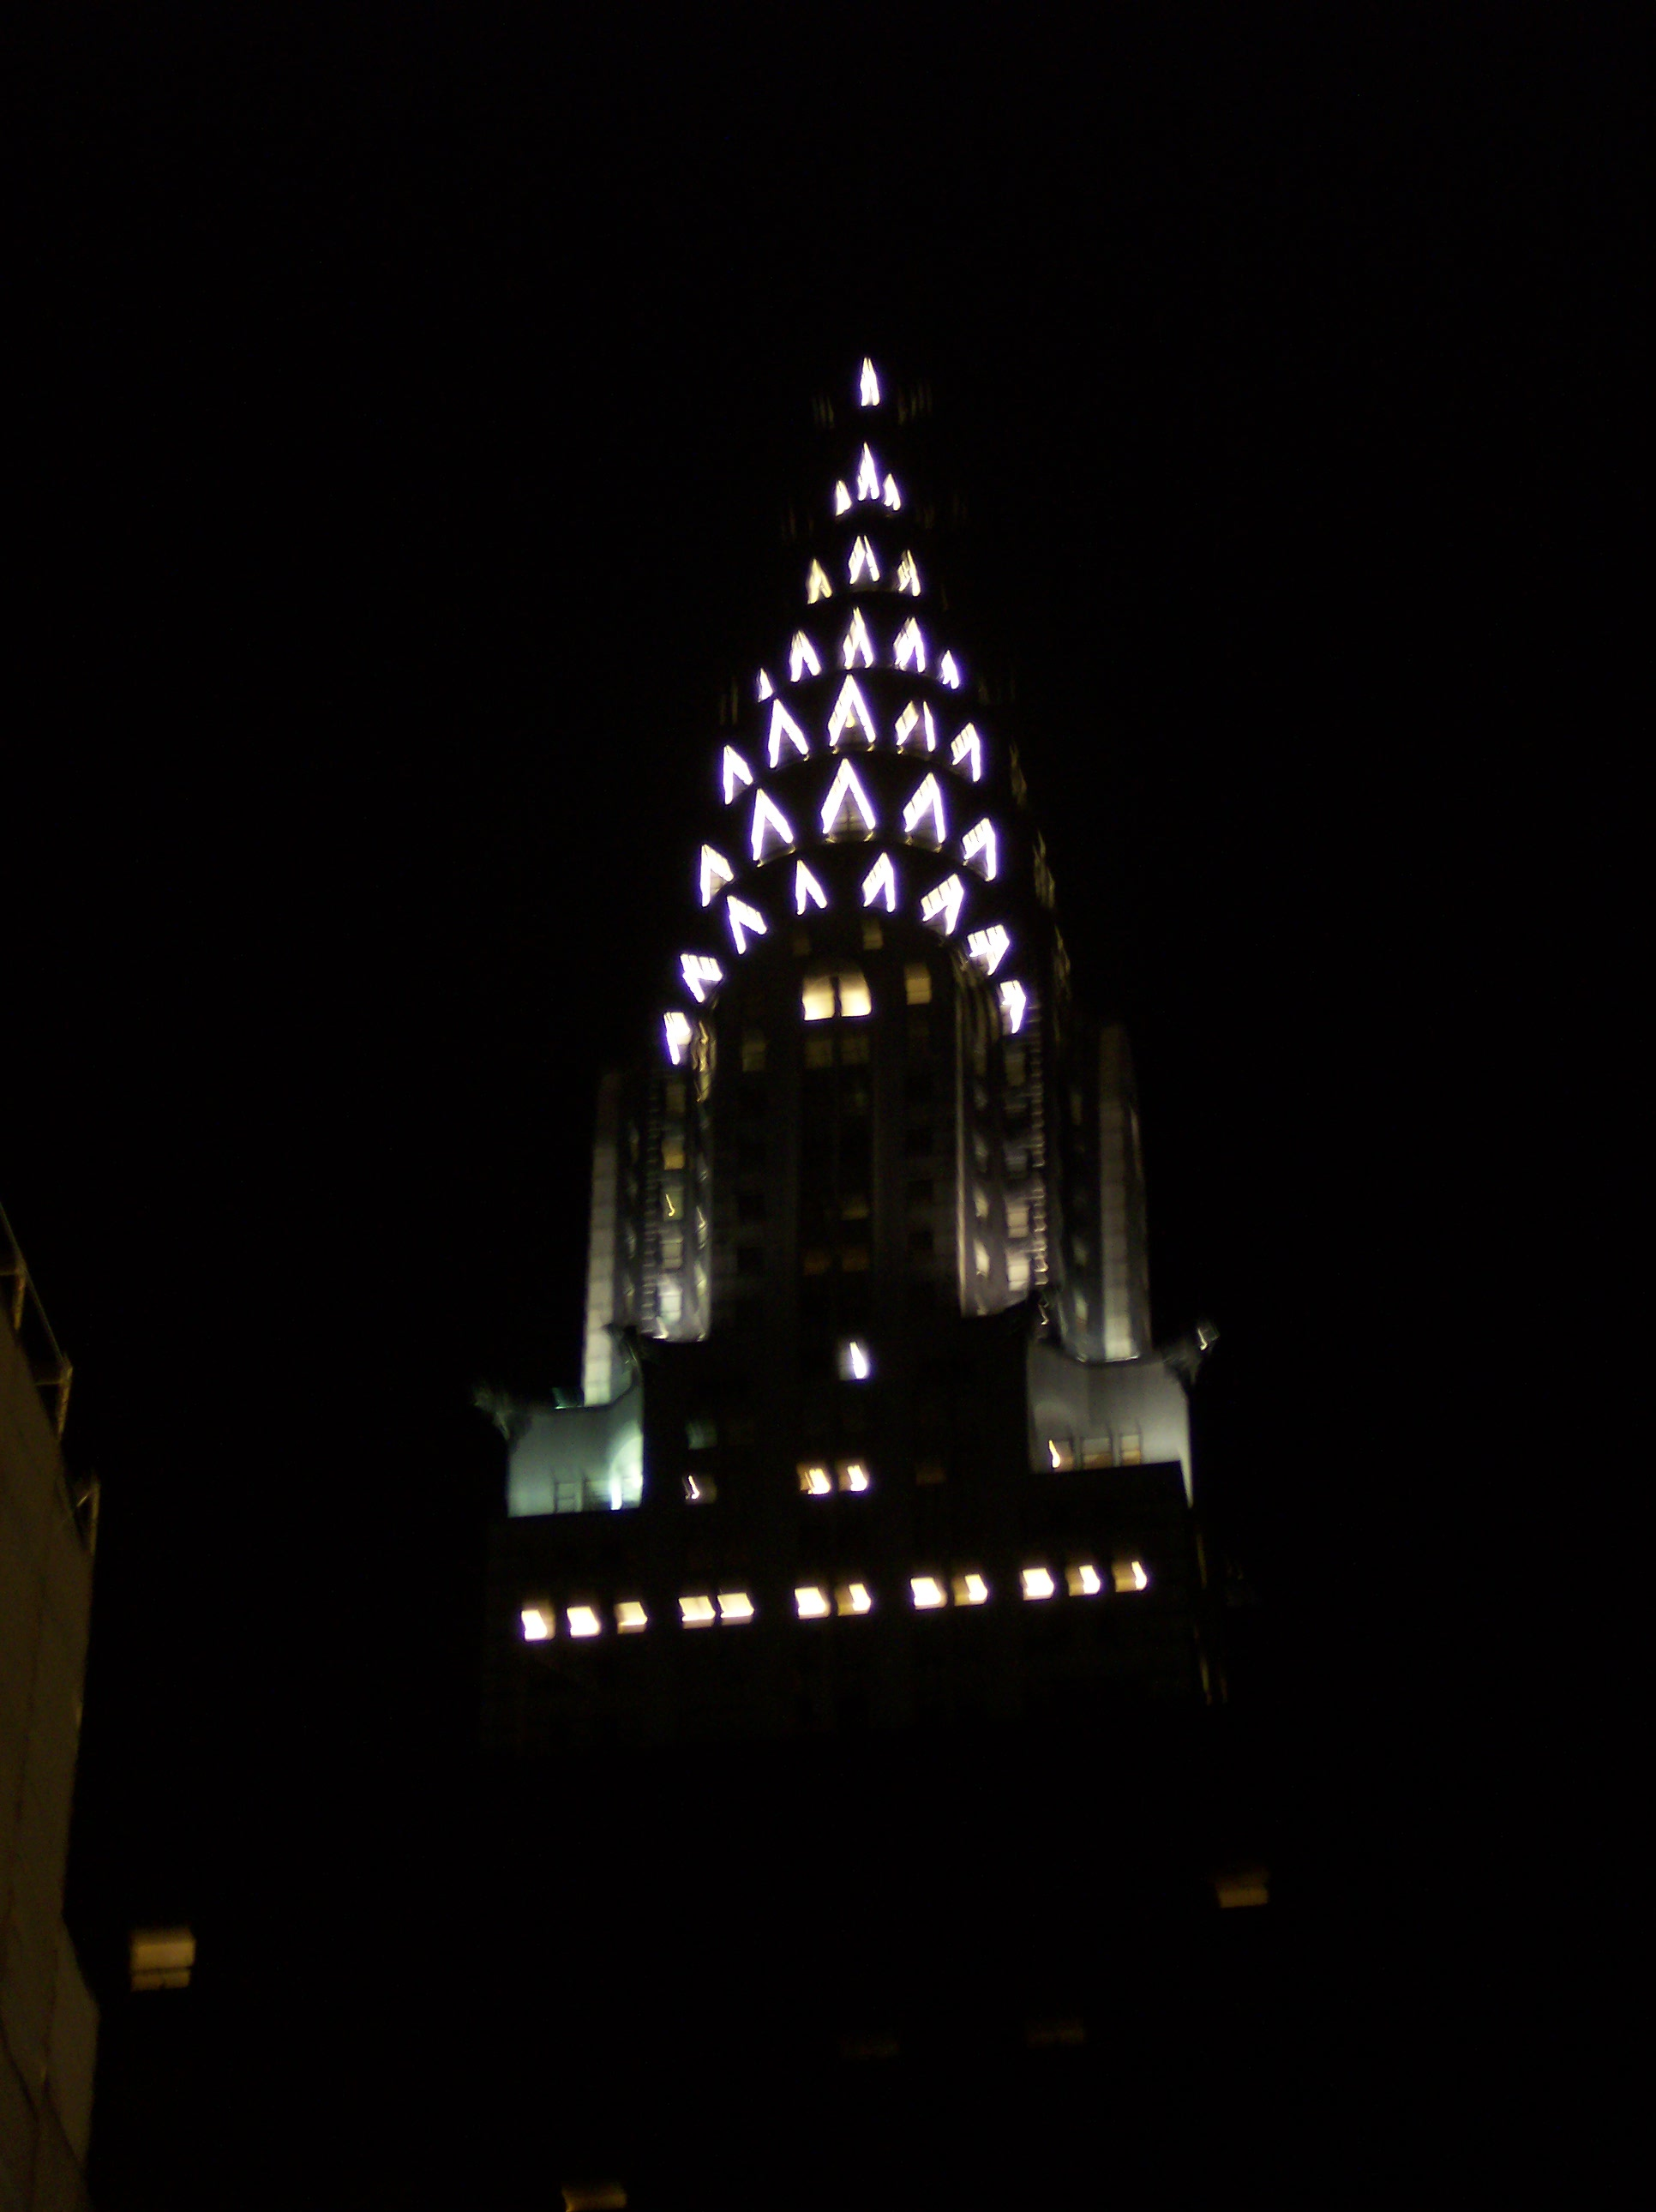 File:Chrysler at night.jpg - Wikimedia Commons